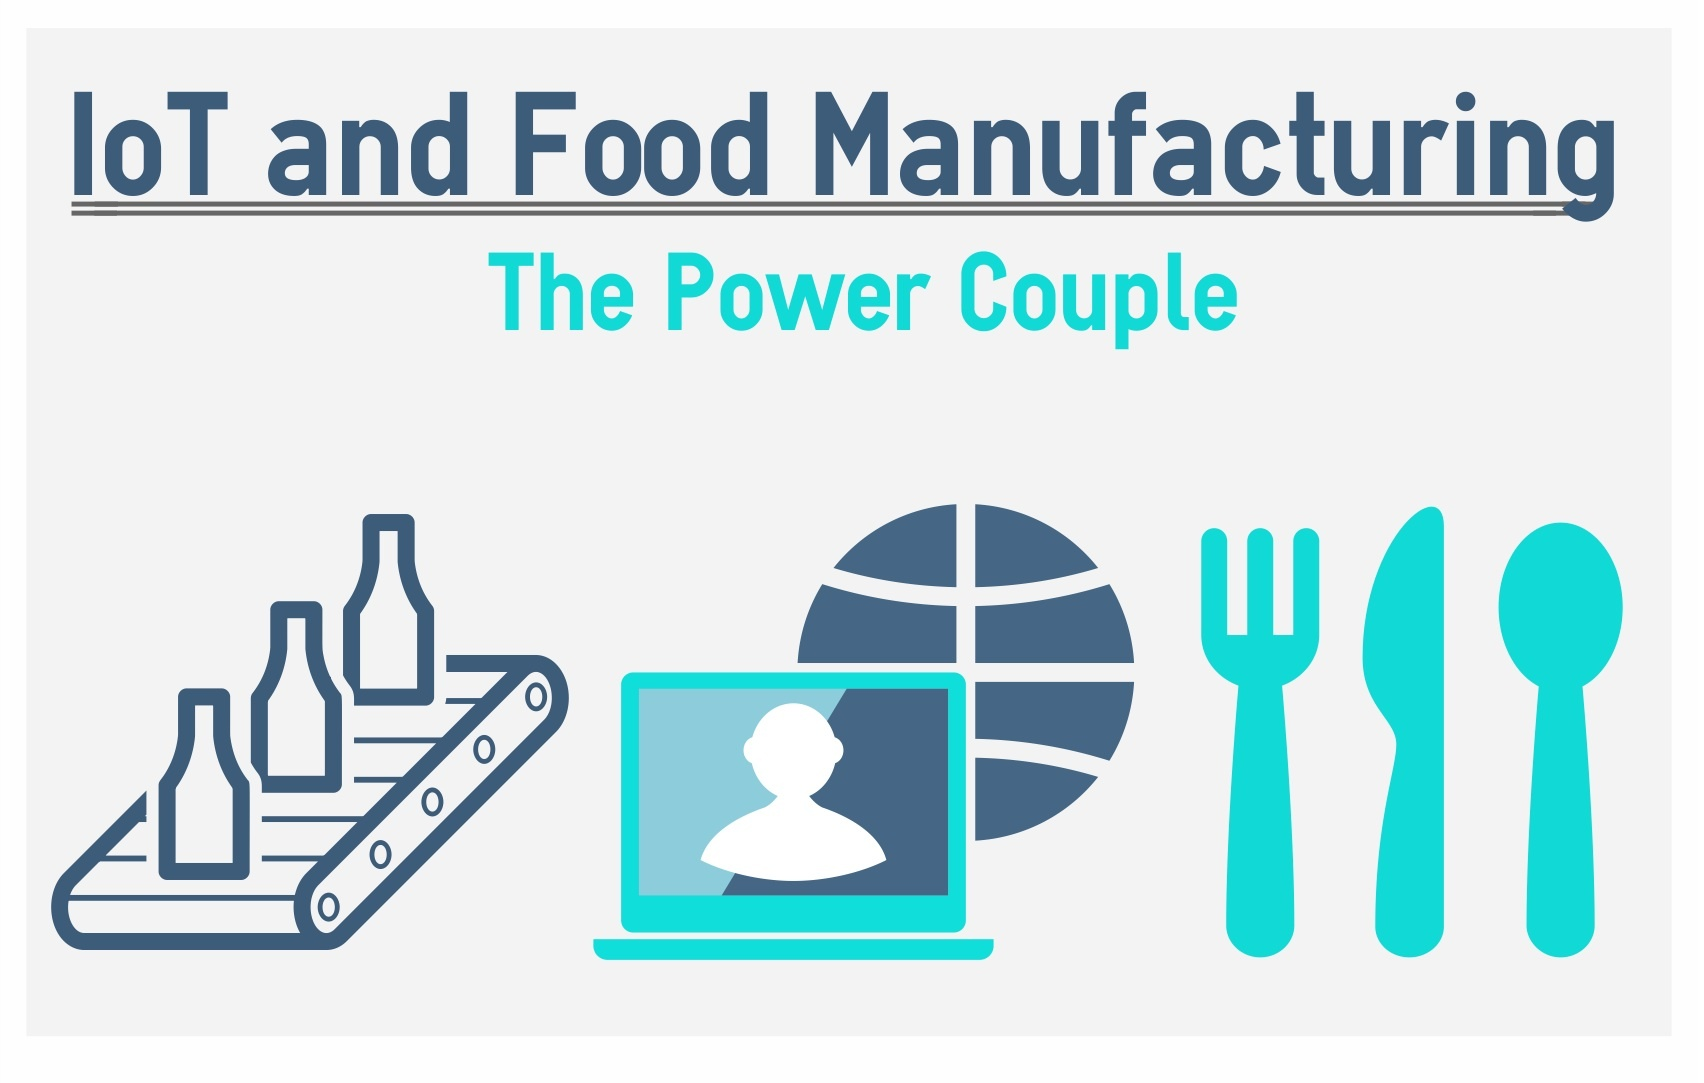 IoT and Food Manufacturing